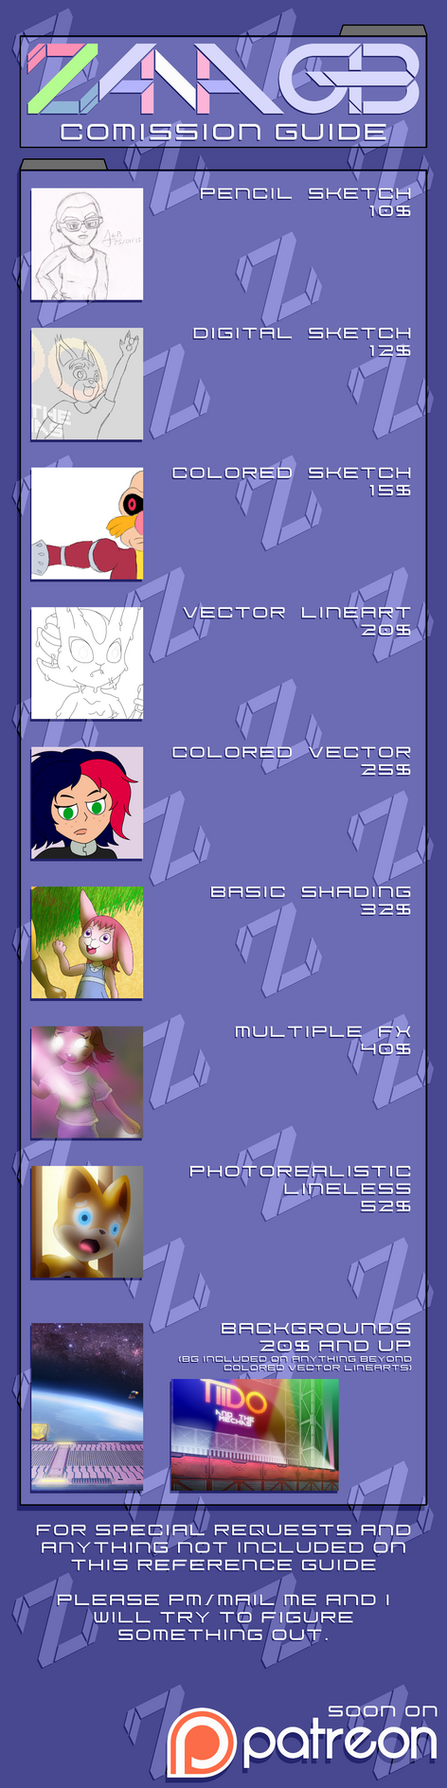 2015 Comission Guide by ZanaGB